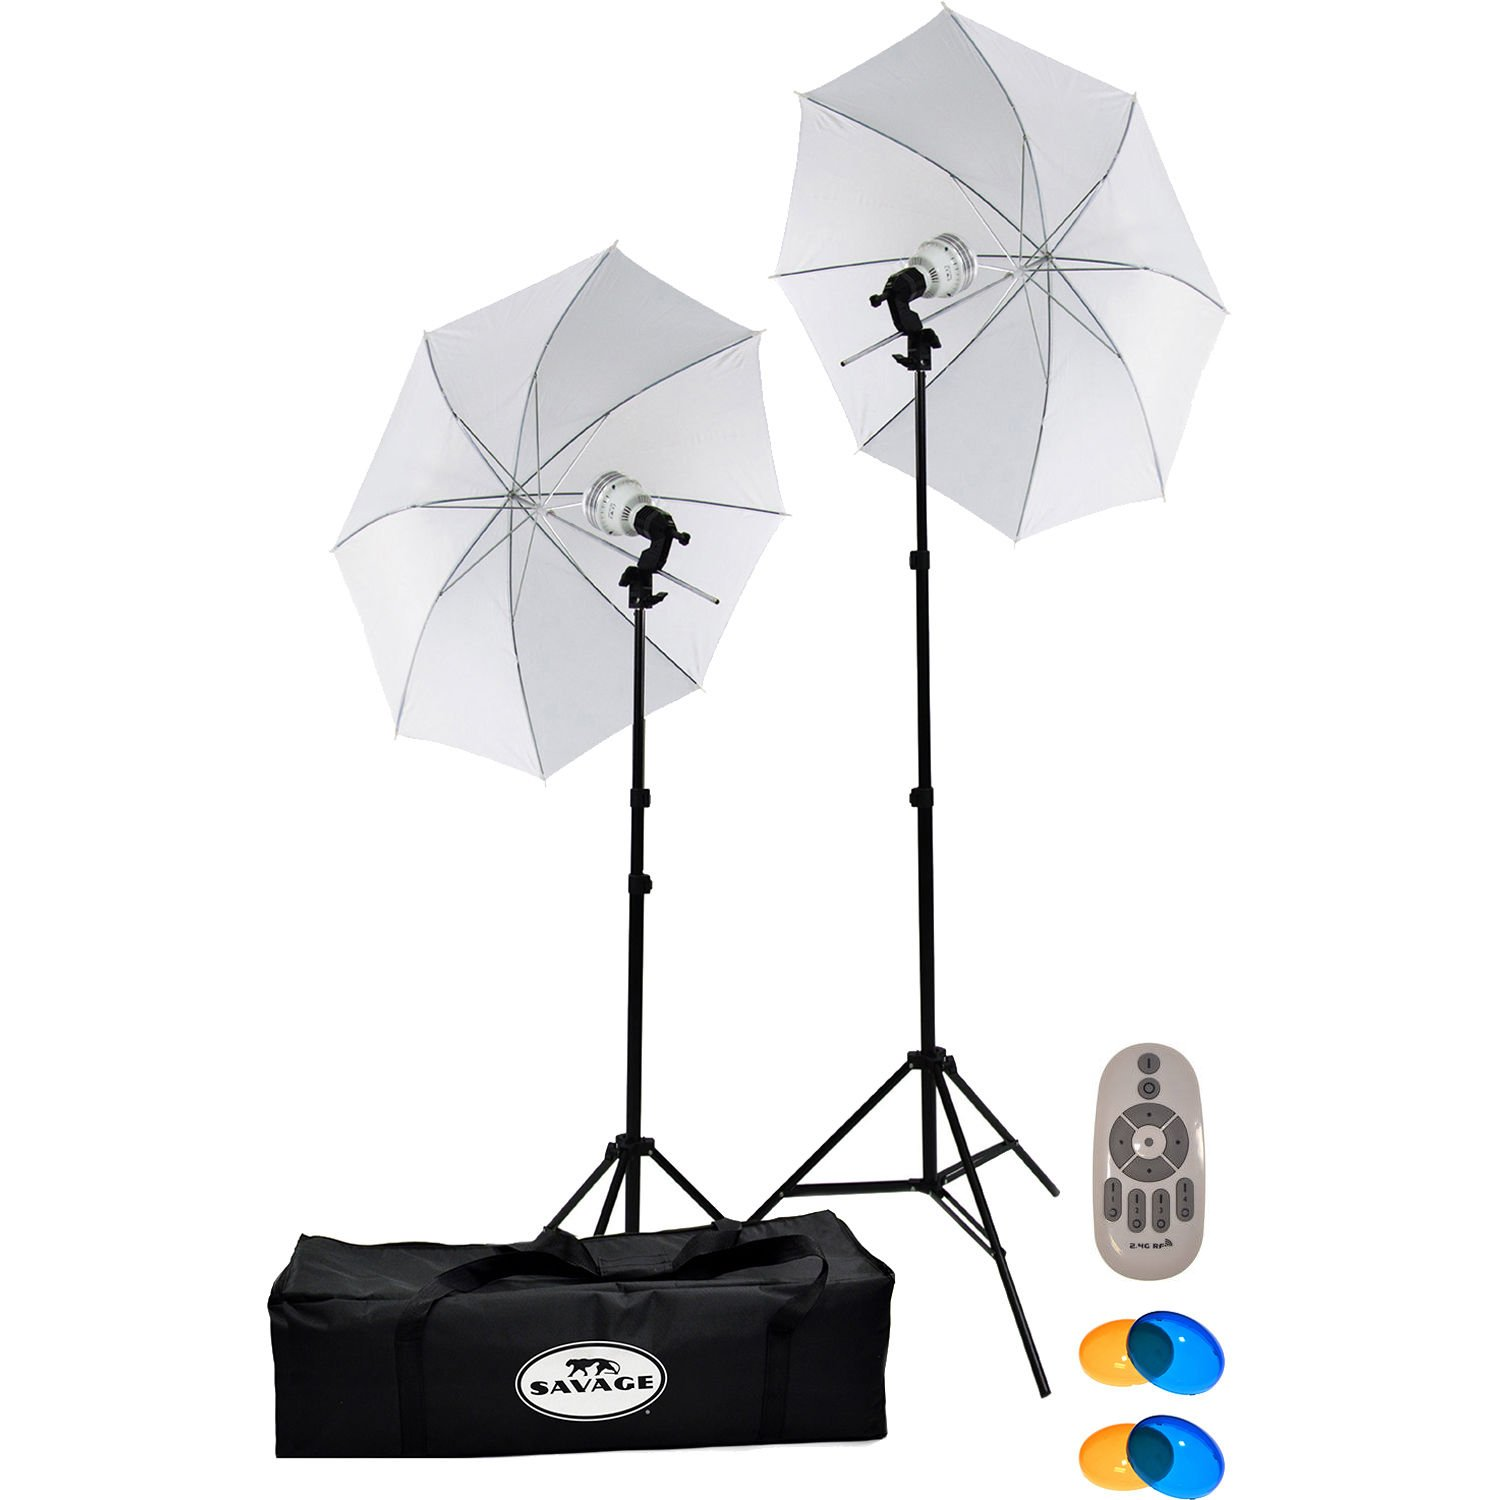 Savage LED60K 500 Watt LED Studio Light Kit with 2 Lights, 2 Stands, 2 Umbrellas, Remote, 2 Warming & 2 Cooling Domes, Case + Reflector Disks + Tripod by Savage (Image #2)